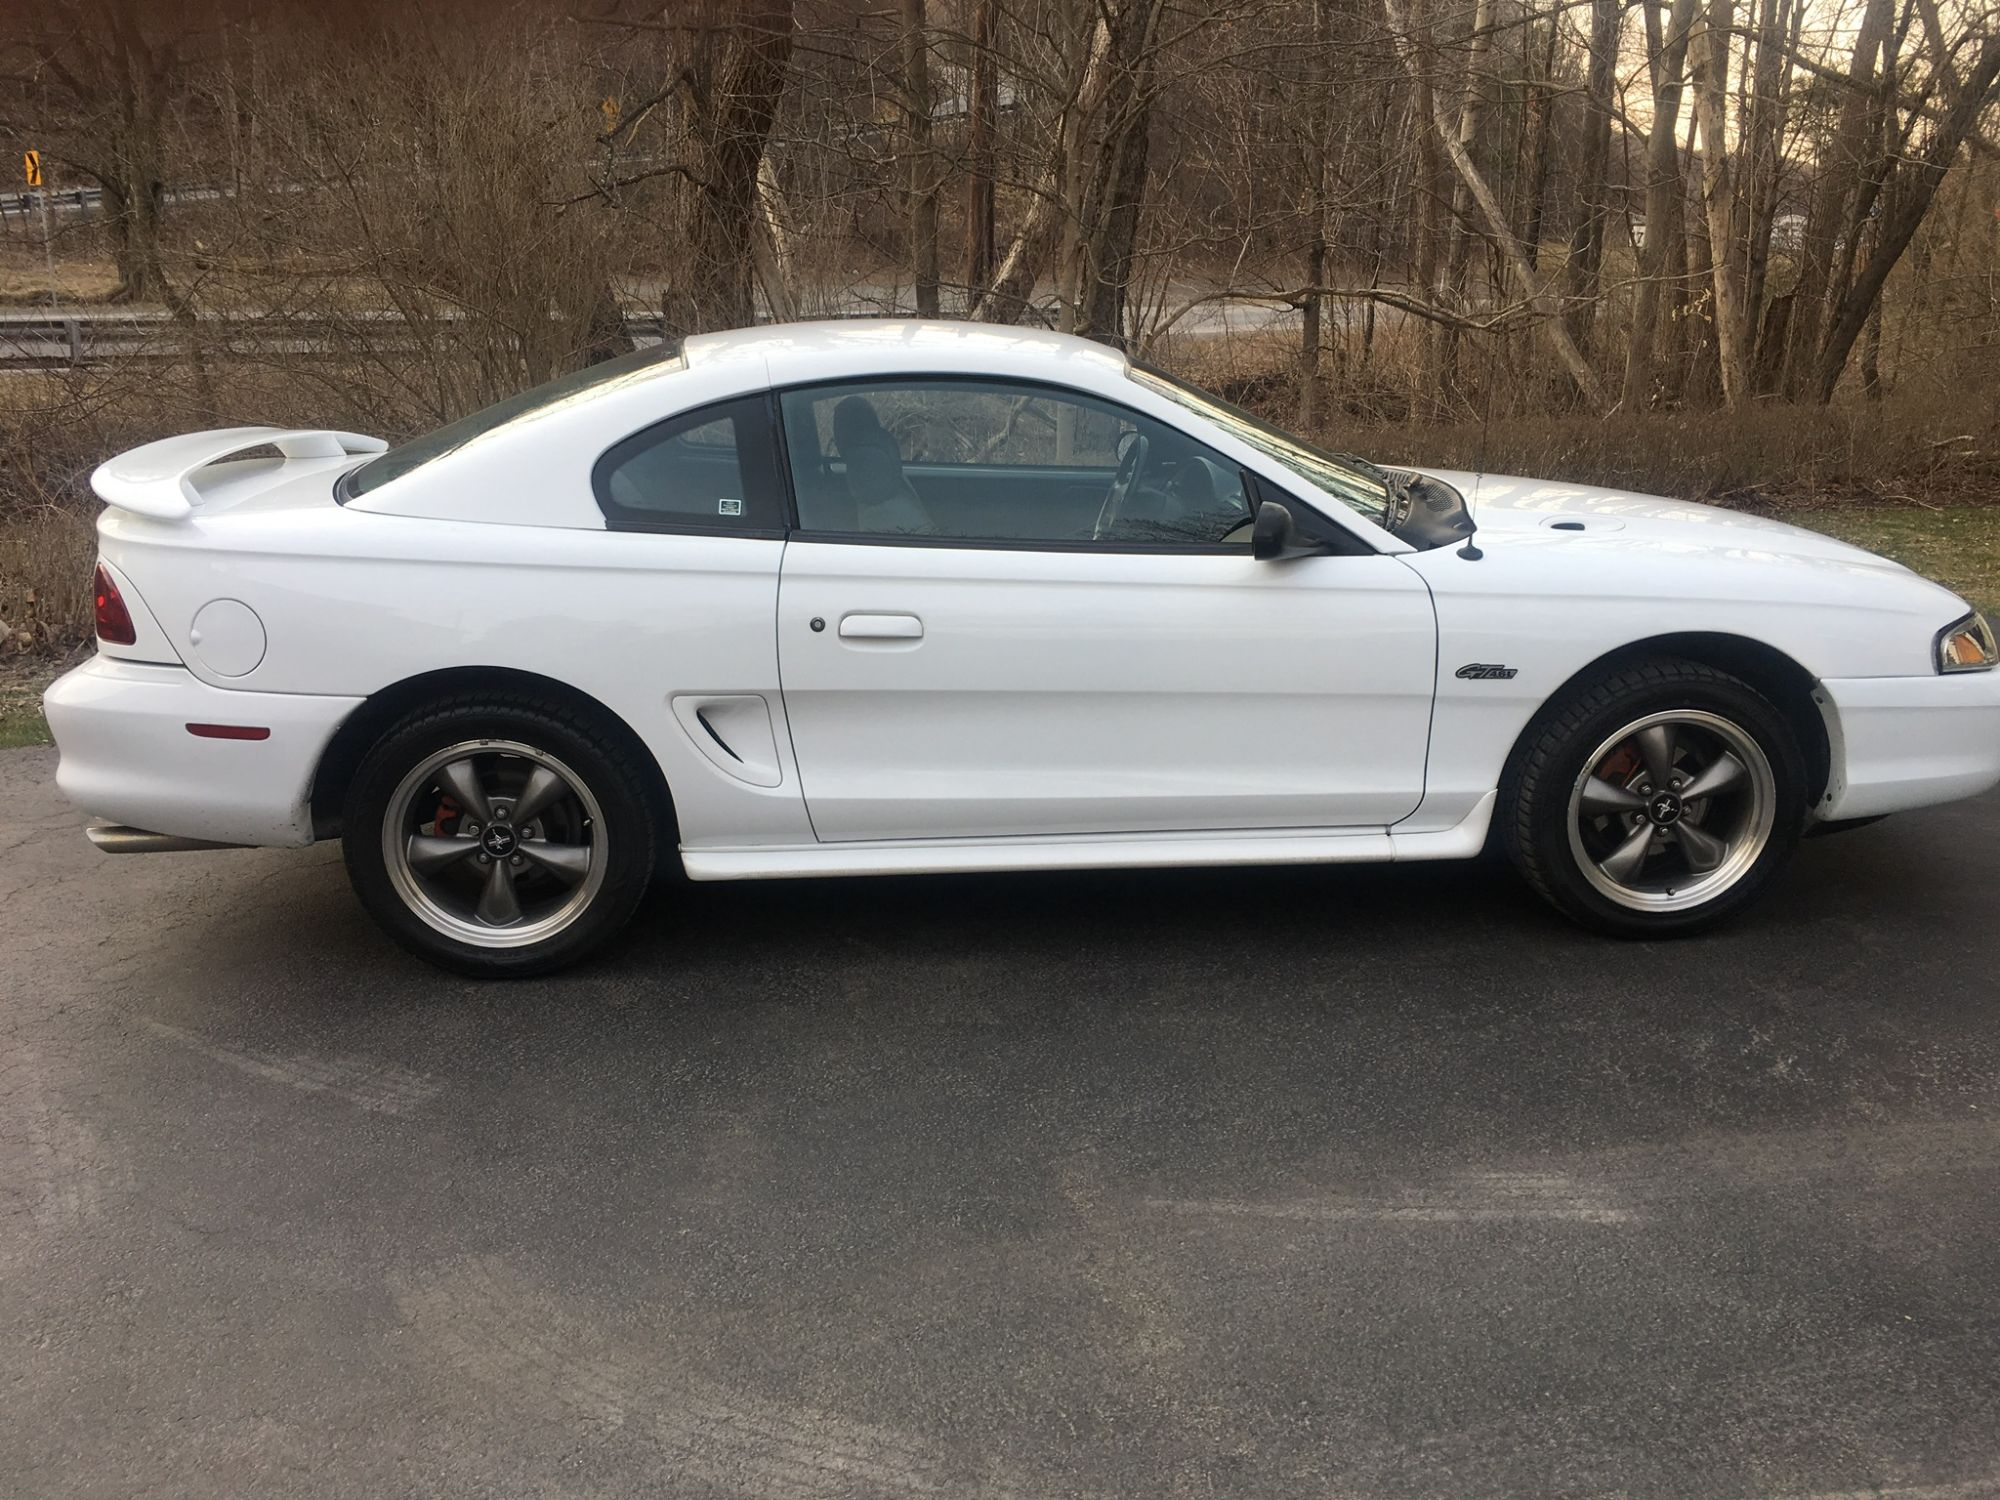 1996 ford mustang gt for sale cars trucks paper shop free classifieds